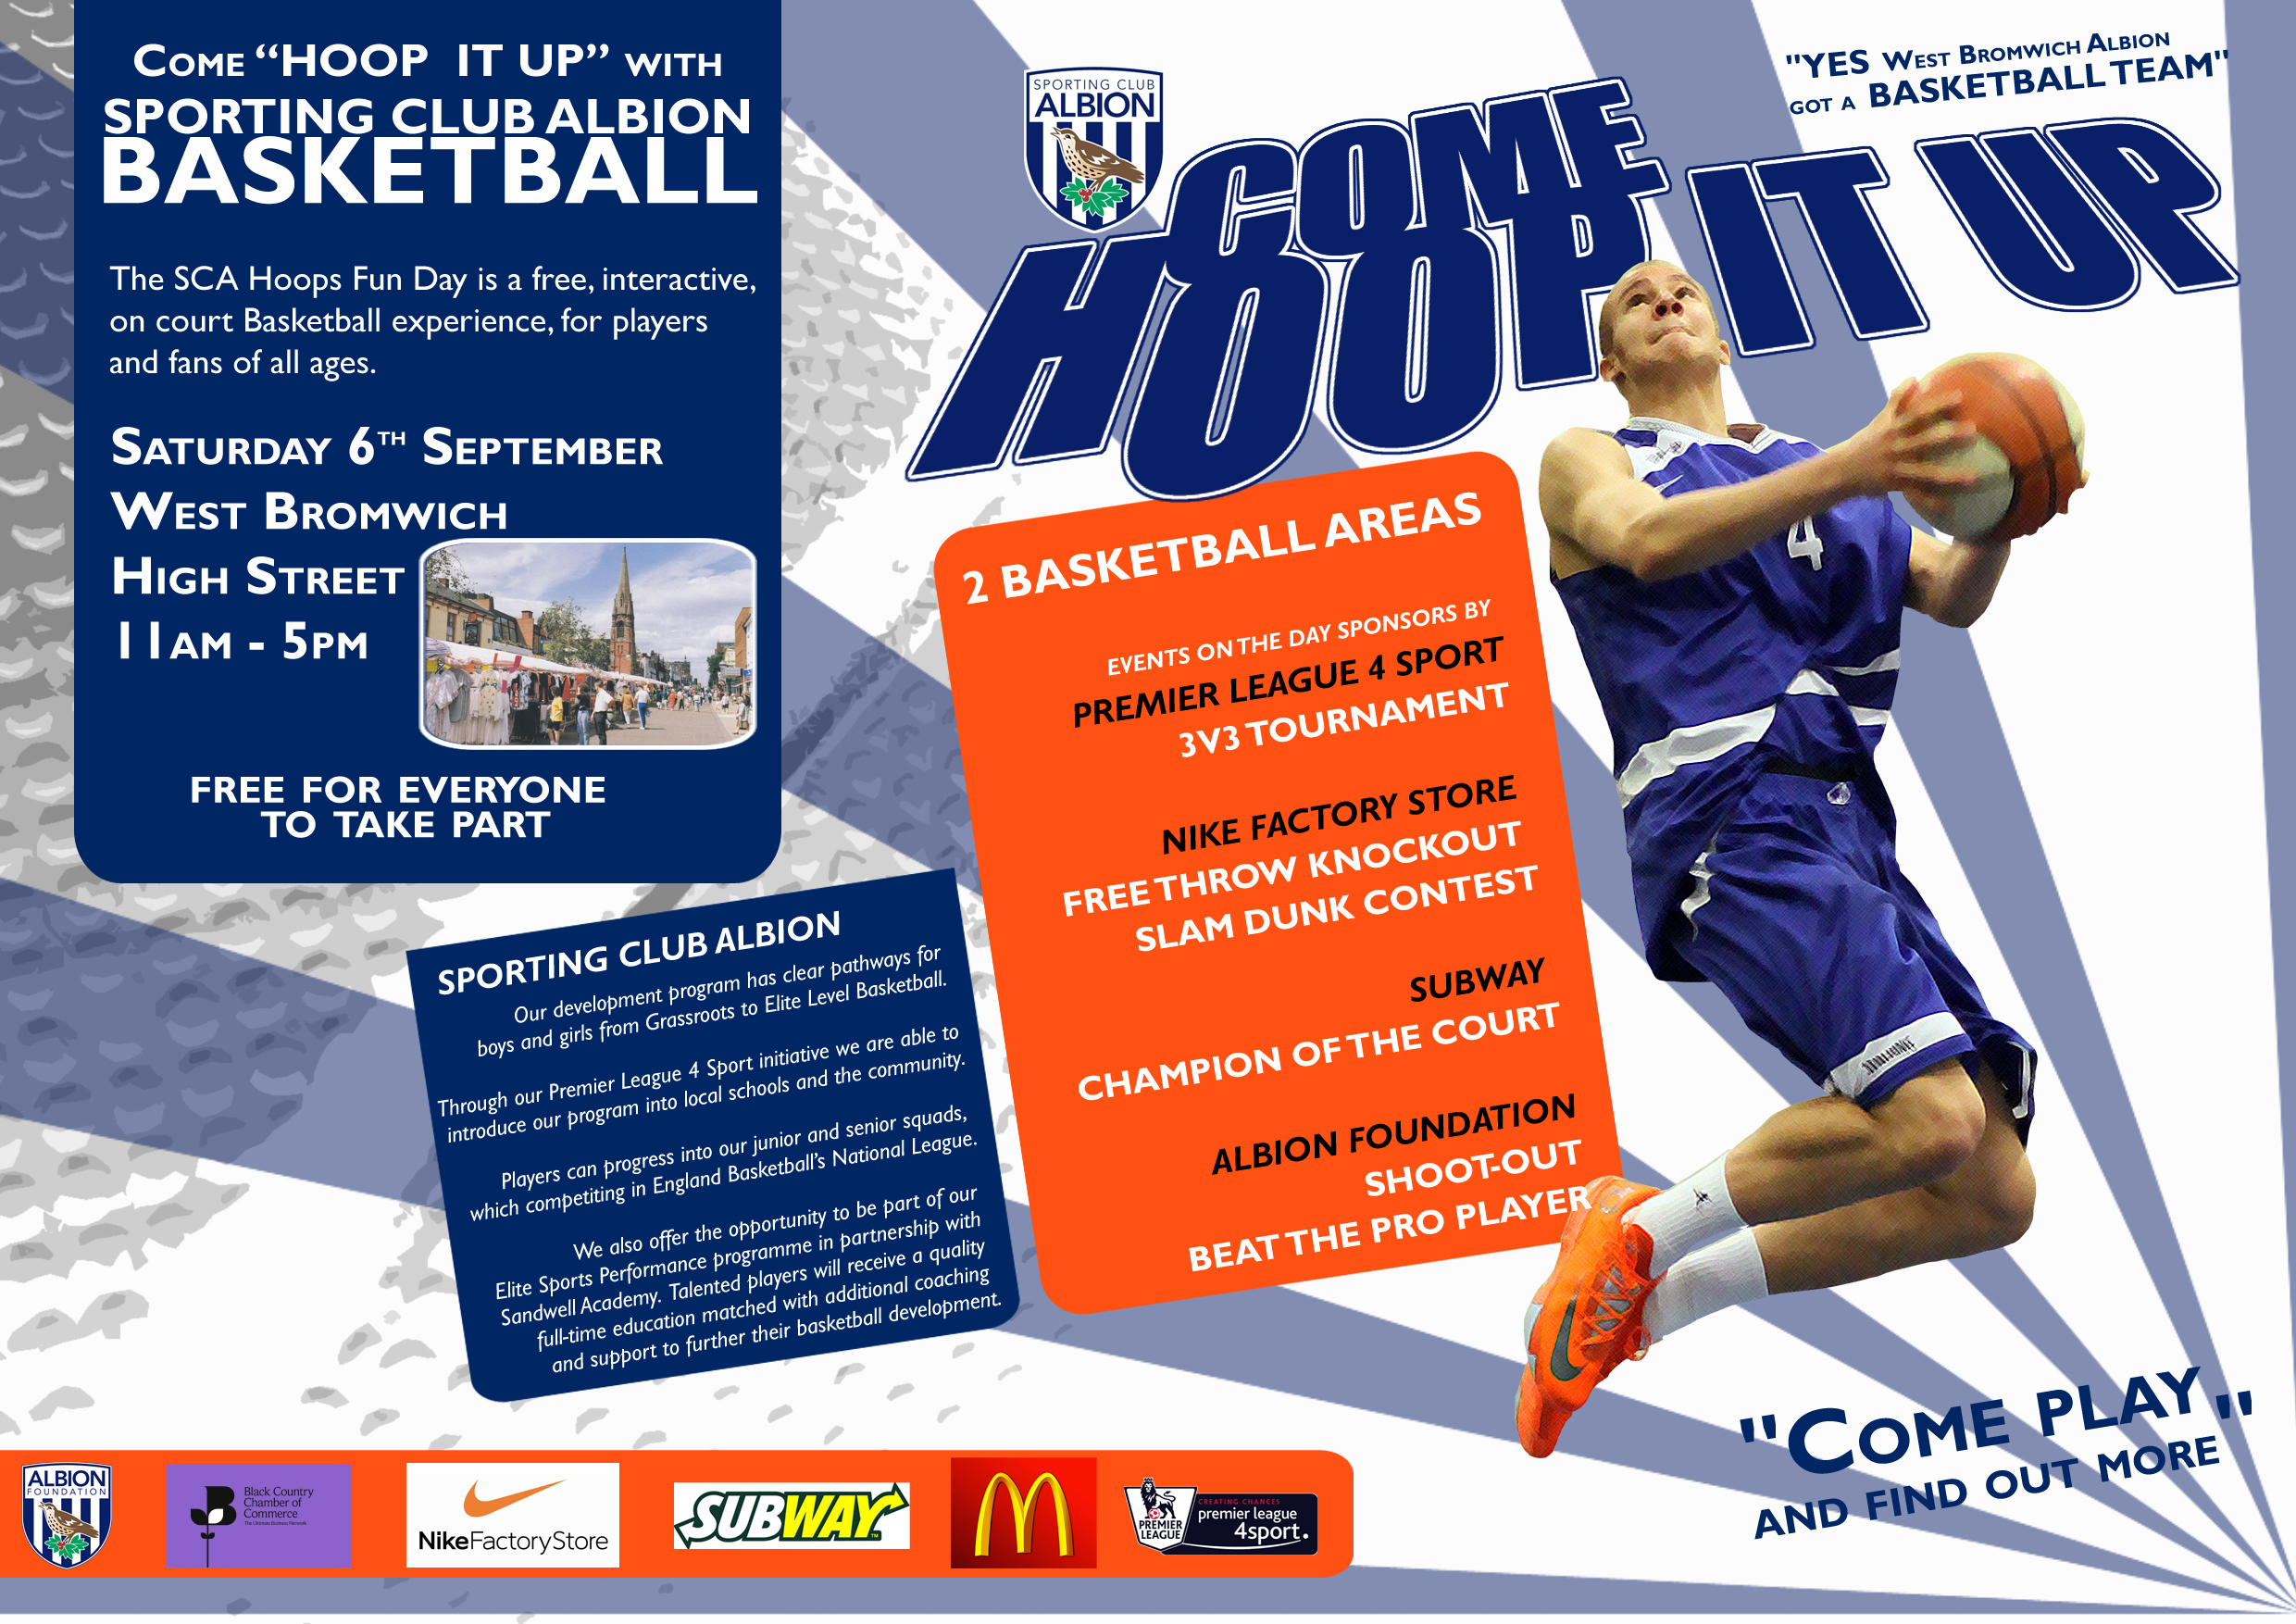 **DONT MISS** Hoop-it-up Event tomorrow in West Bromwich Town Centre